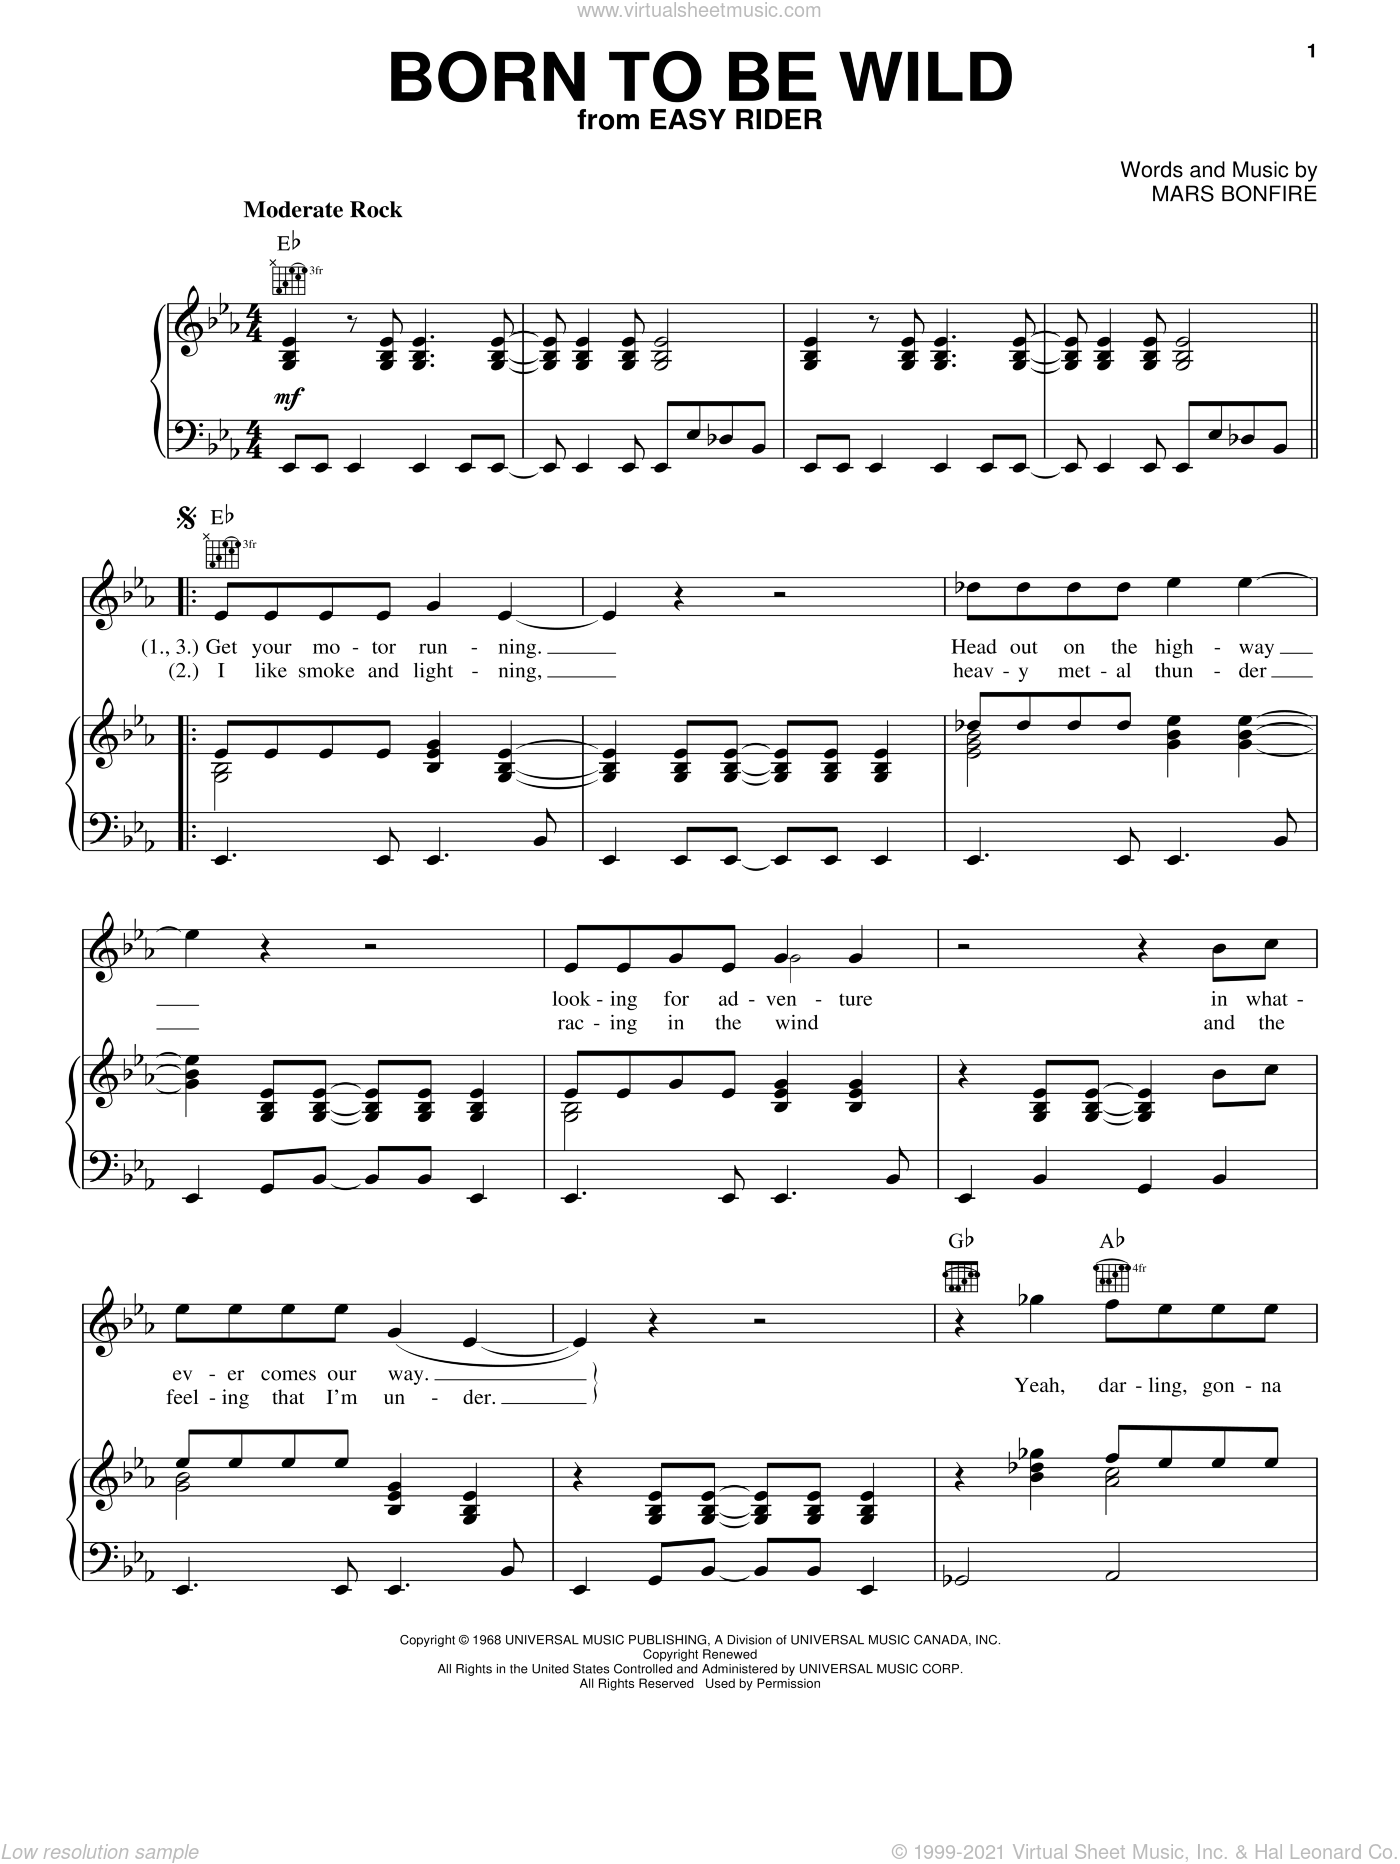 Born To Be Wild sheet music for voice, piano or guitar by Mars Bonfire, John Kay and Steppenwolf. Score Image Preview.